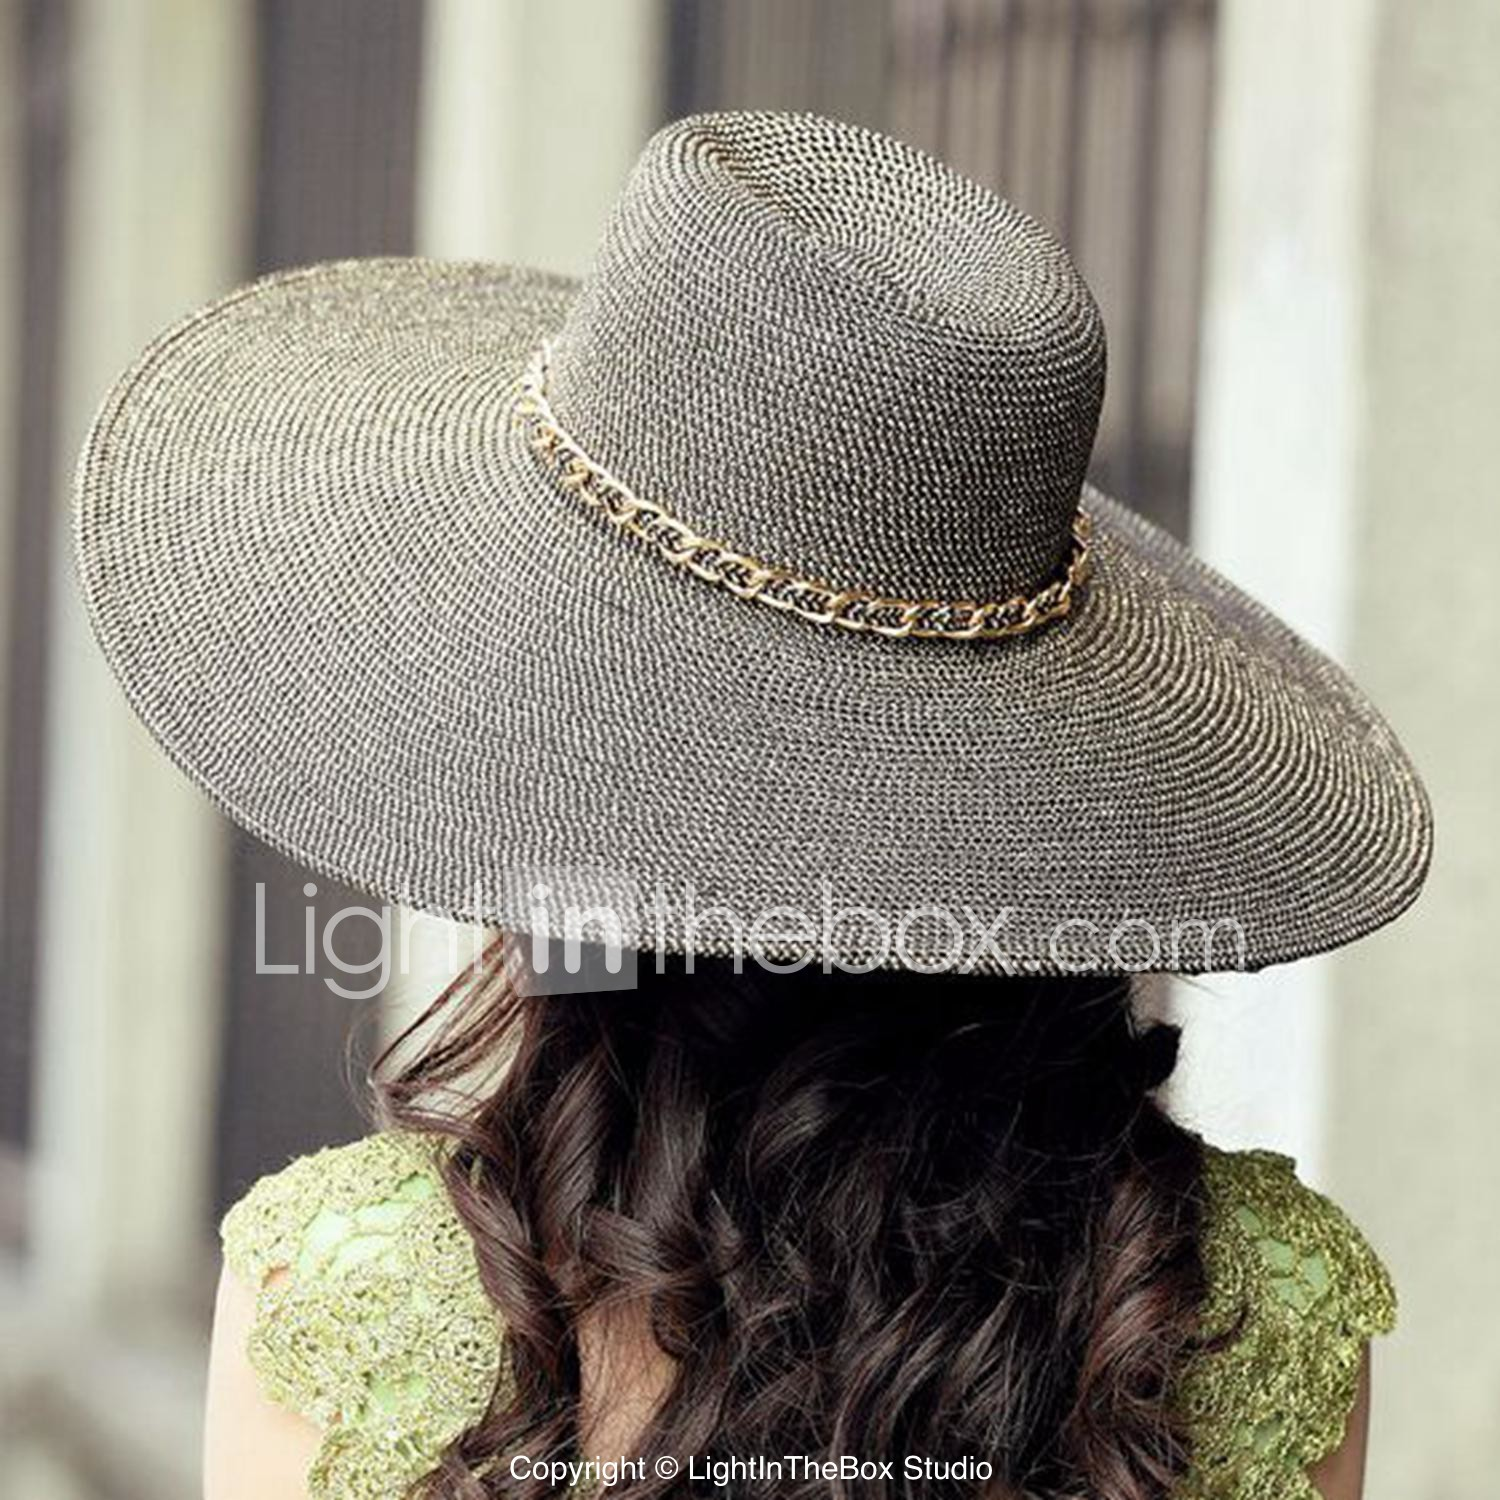 Exported Raffia Straw Ladies Outdoor Casual Beach Hats With Gold Chain   01246194 f6dbcd5c7c5